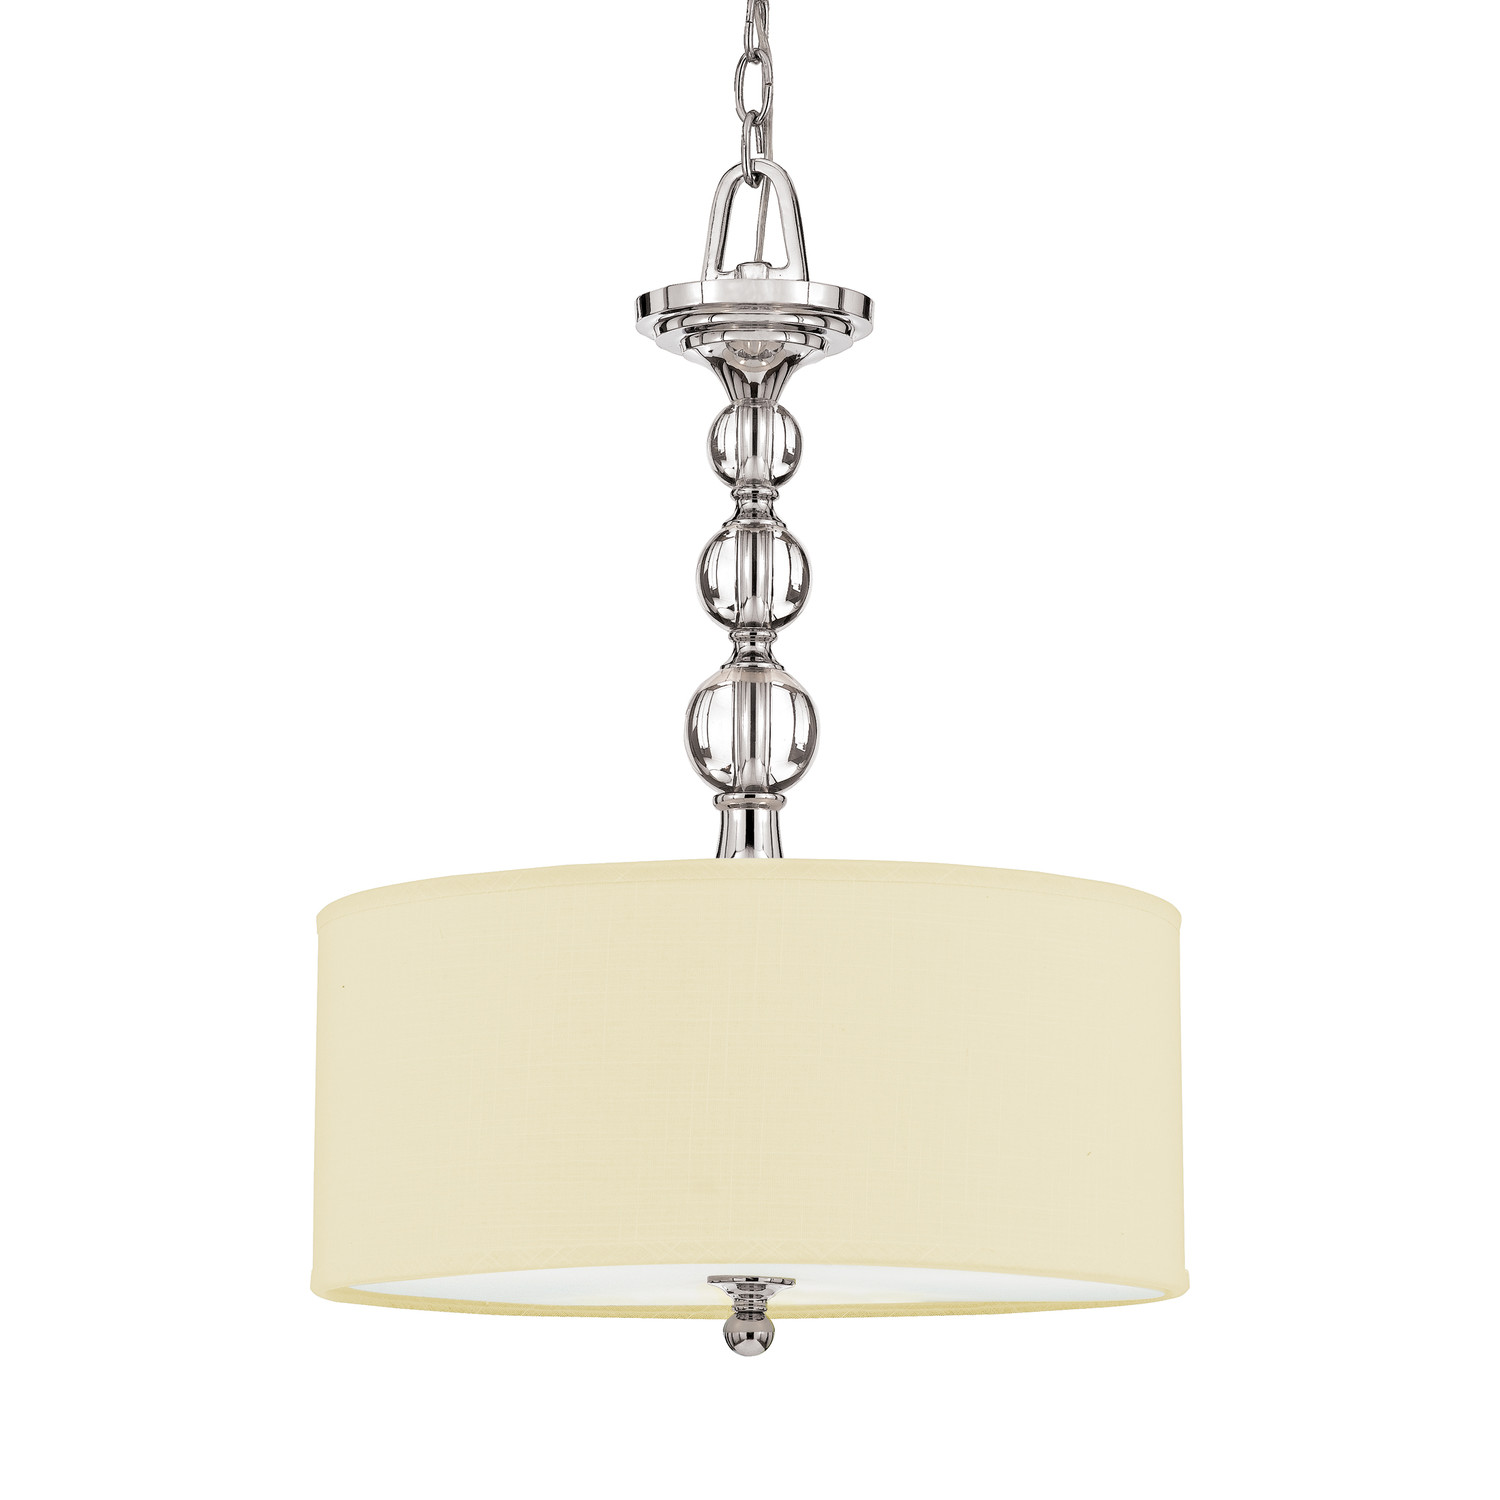 Chic Quoizel Downtown 3 Light Drum Pendant For Home Lighting Ideas